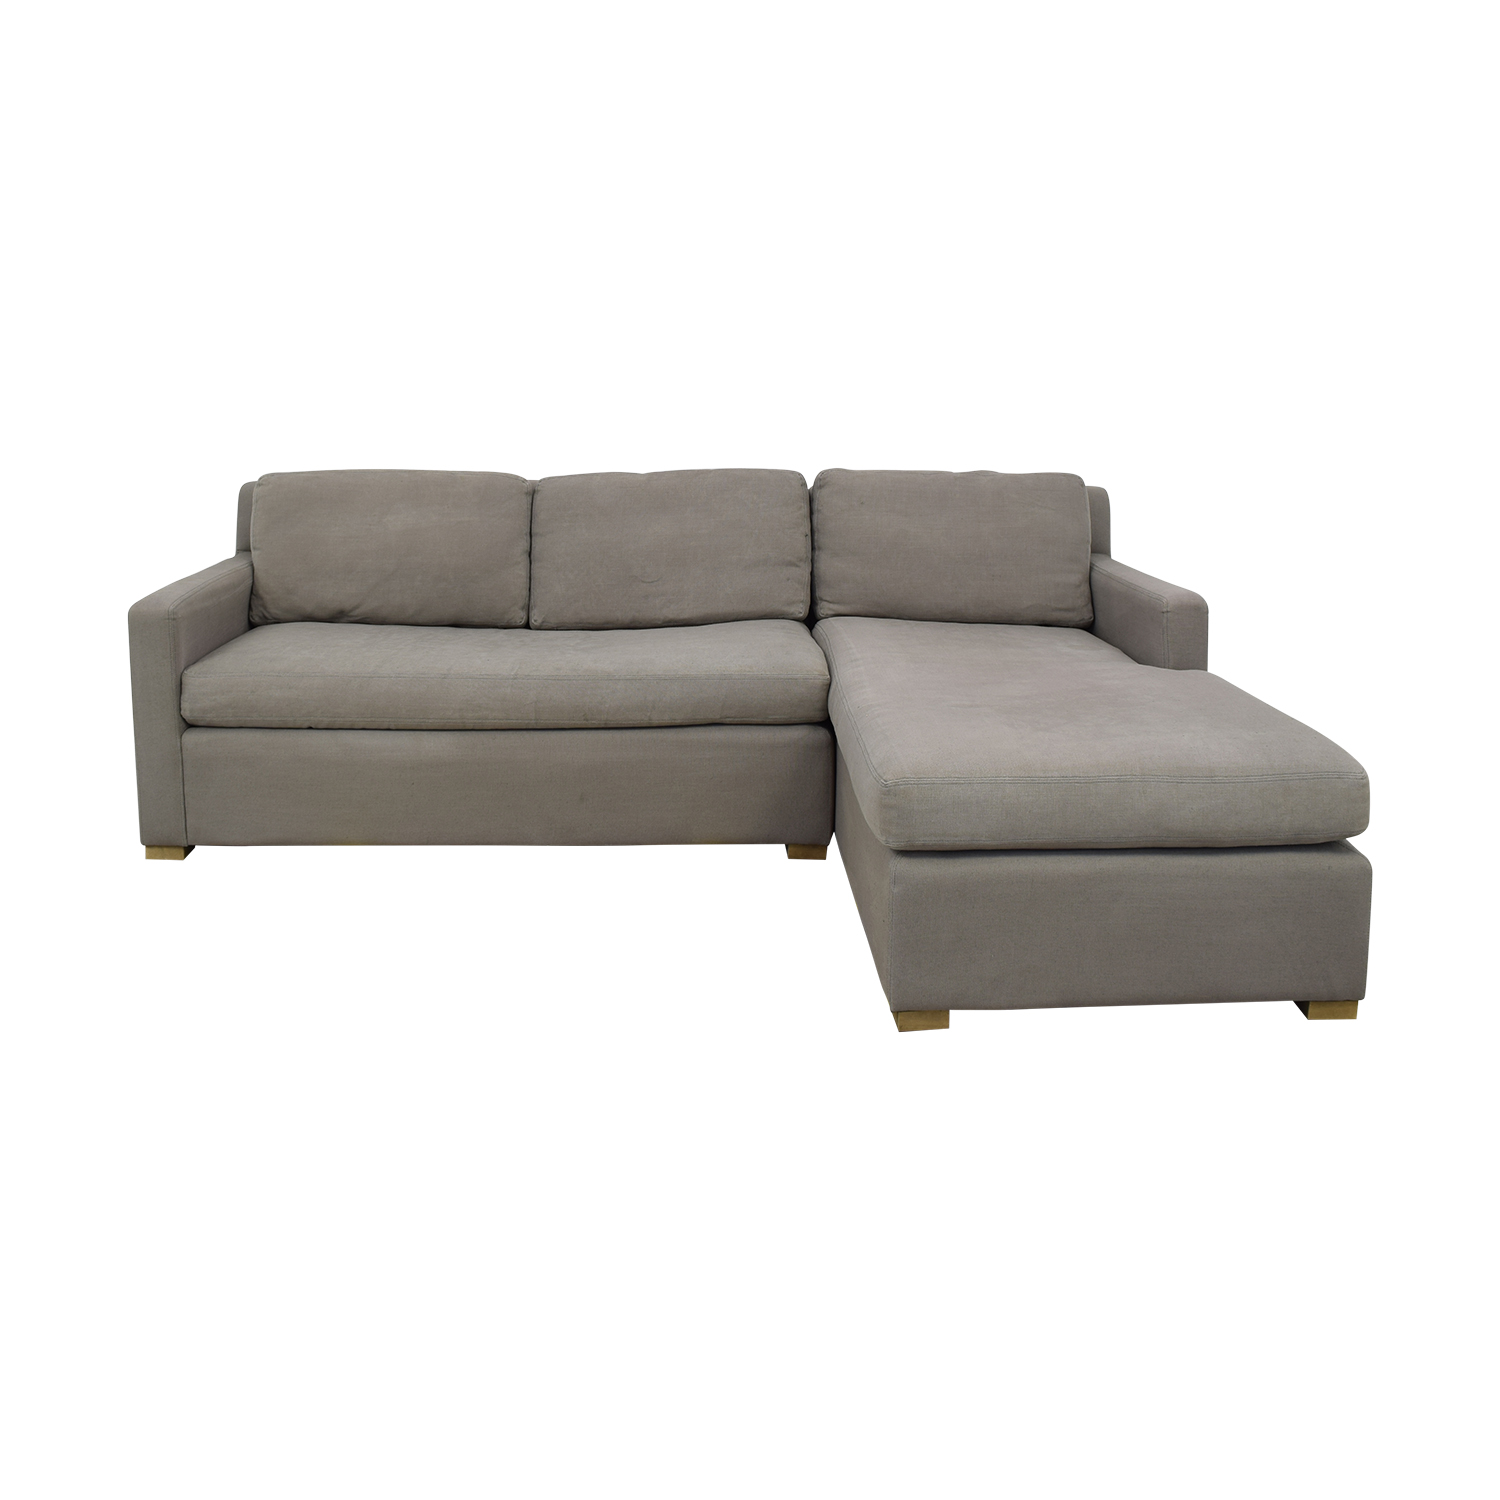 shop Restoration Hardware Belgian Track Arm Right-Arm Chaise Sectional Restoration Hardware Chaises